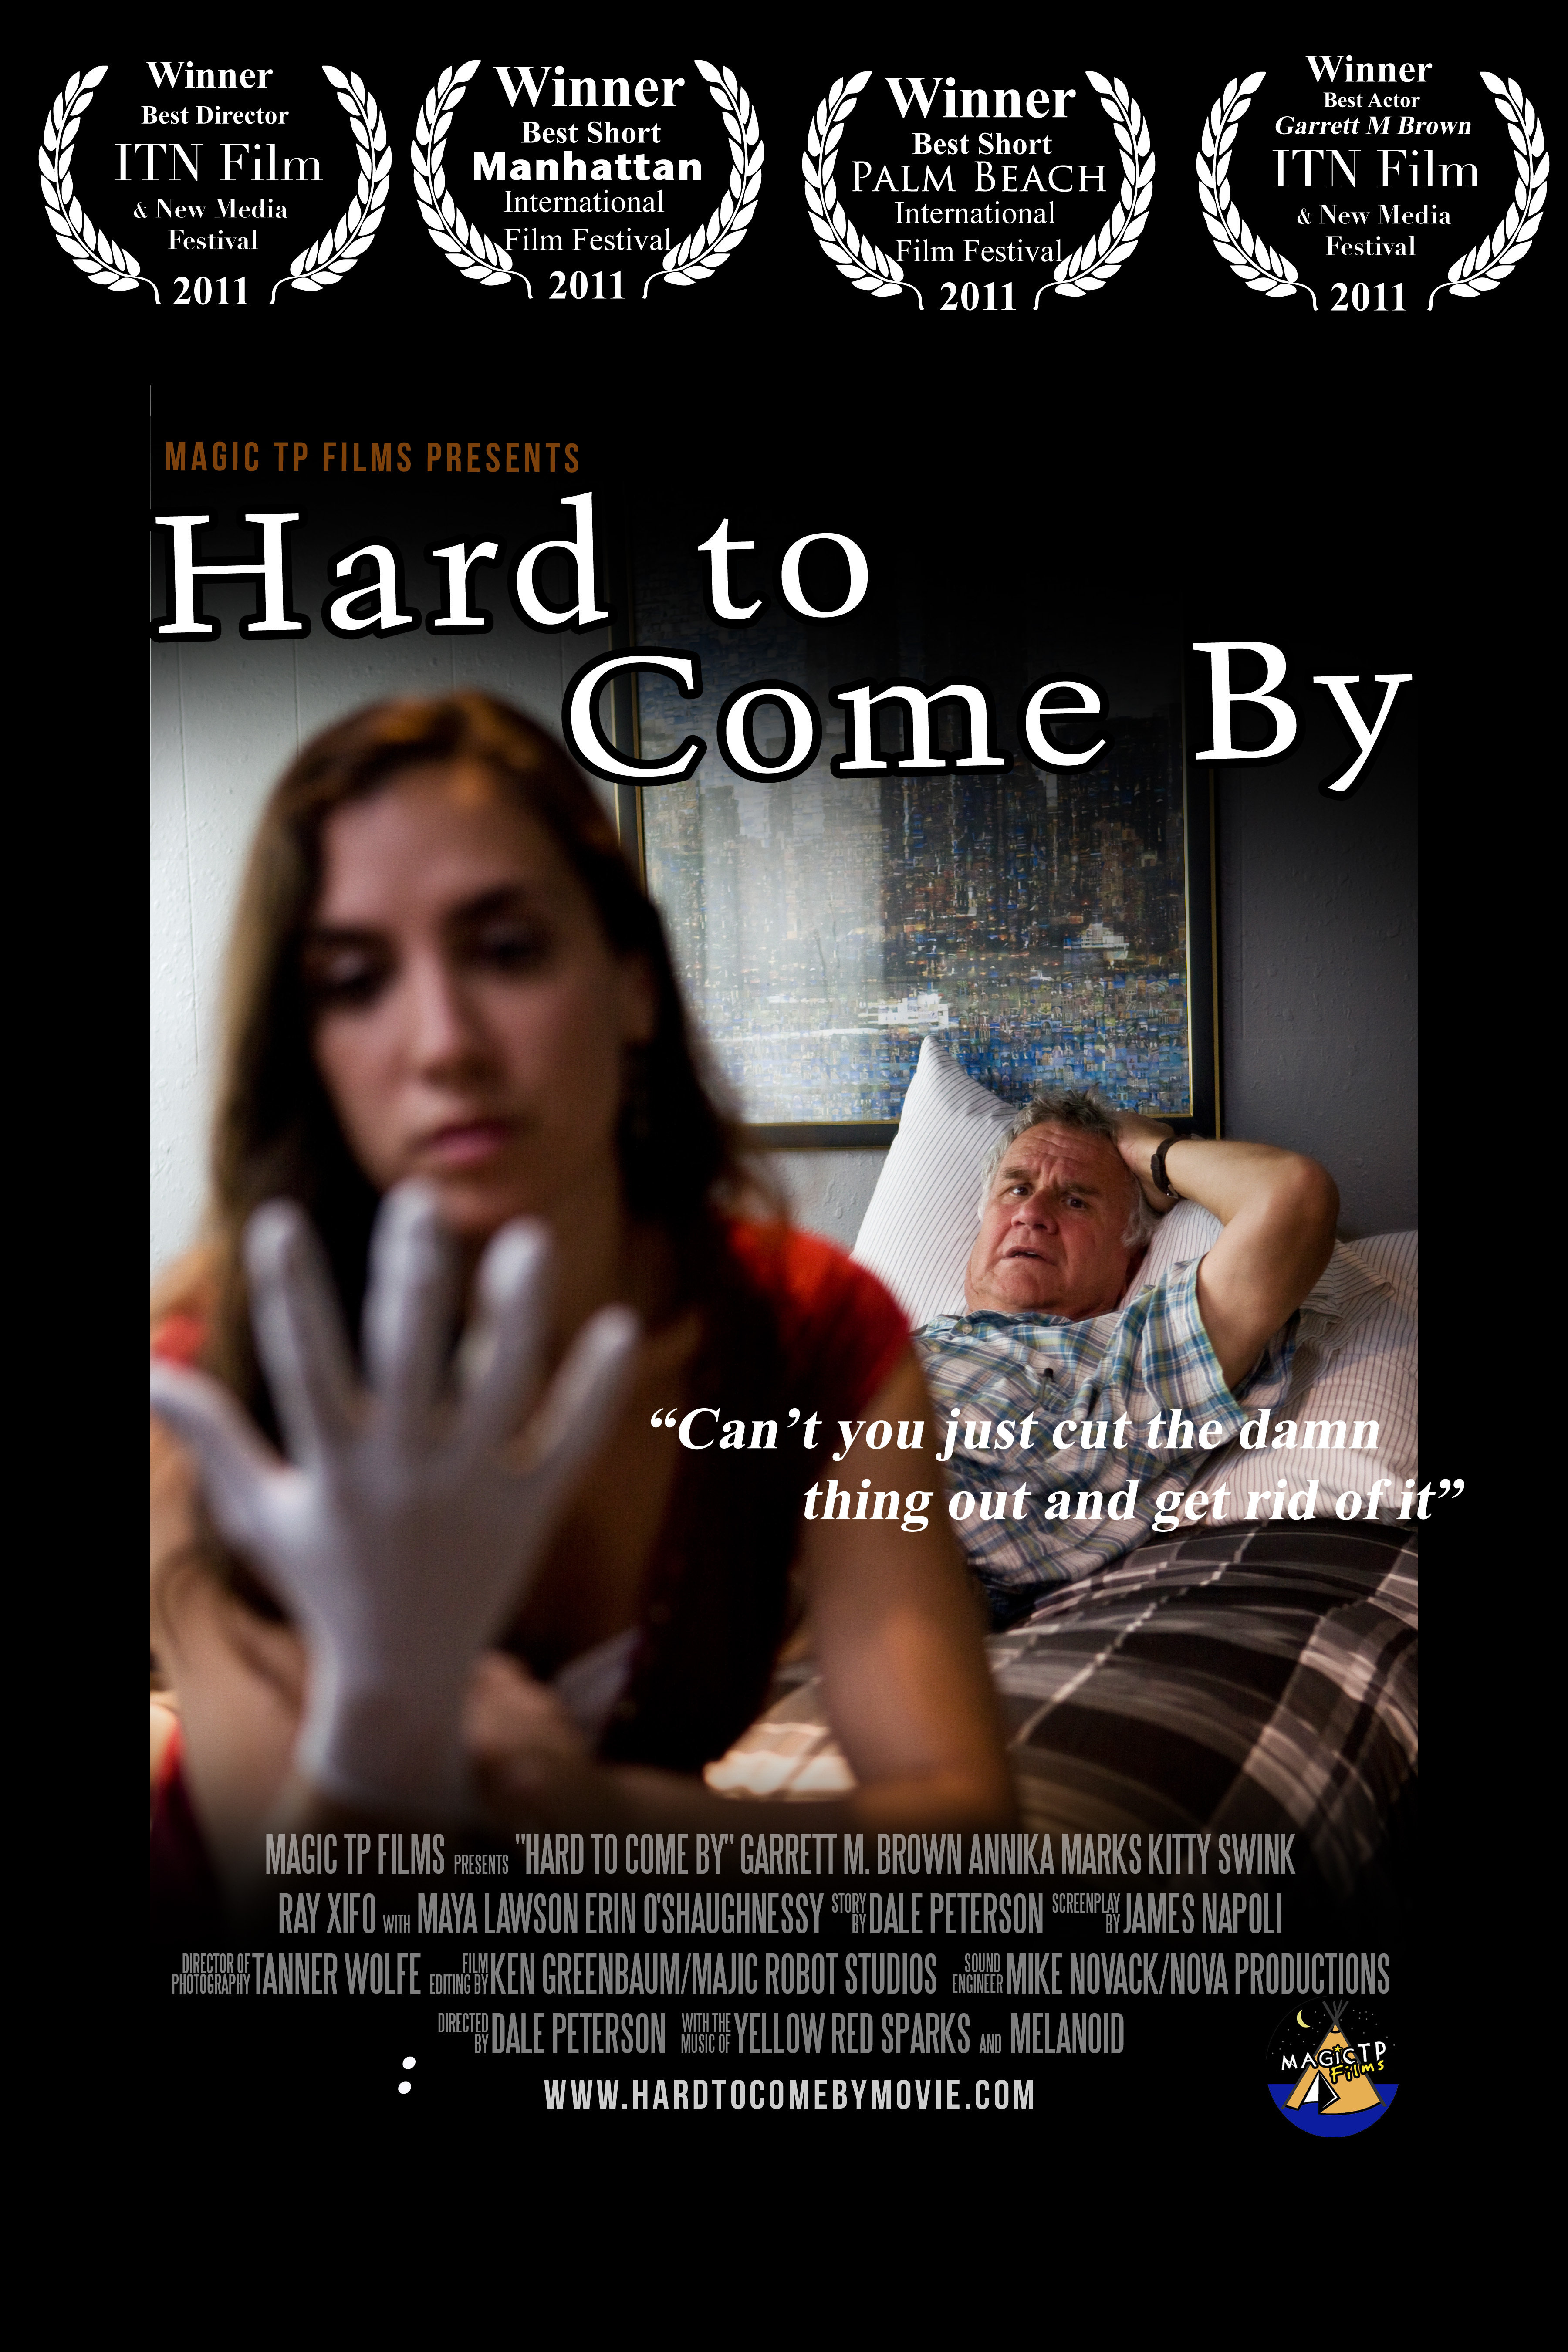 Hard to come by